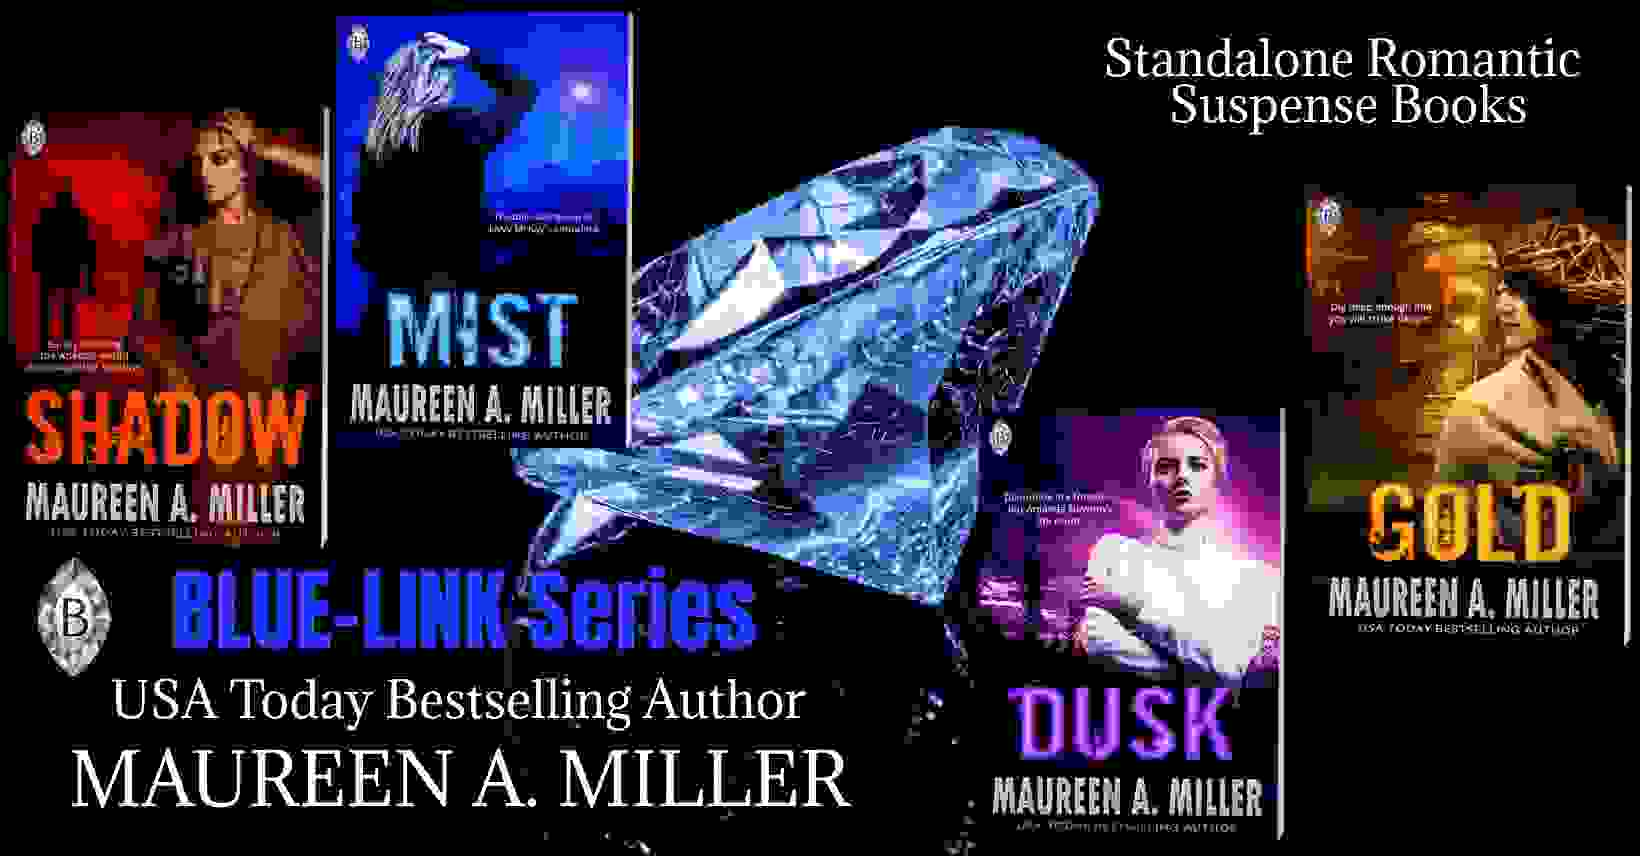 BLUE-LINK romantic suspense book covers with blue diamond in background.